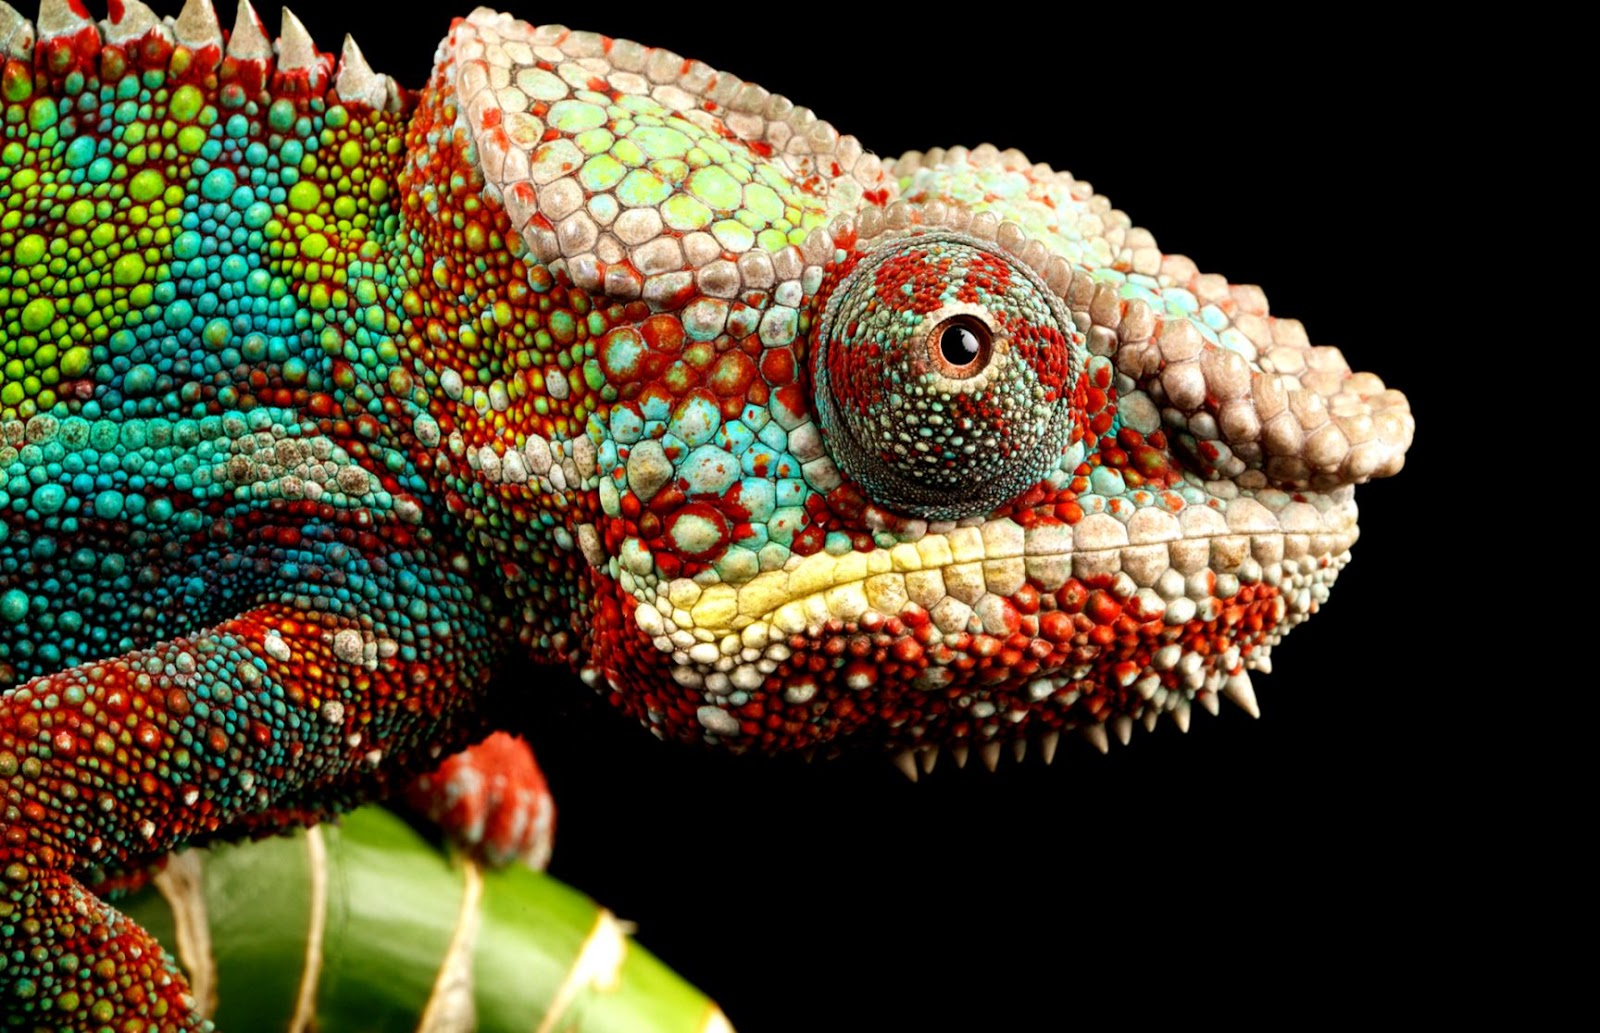 Chameleon Lizard Eyes